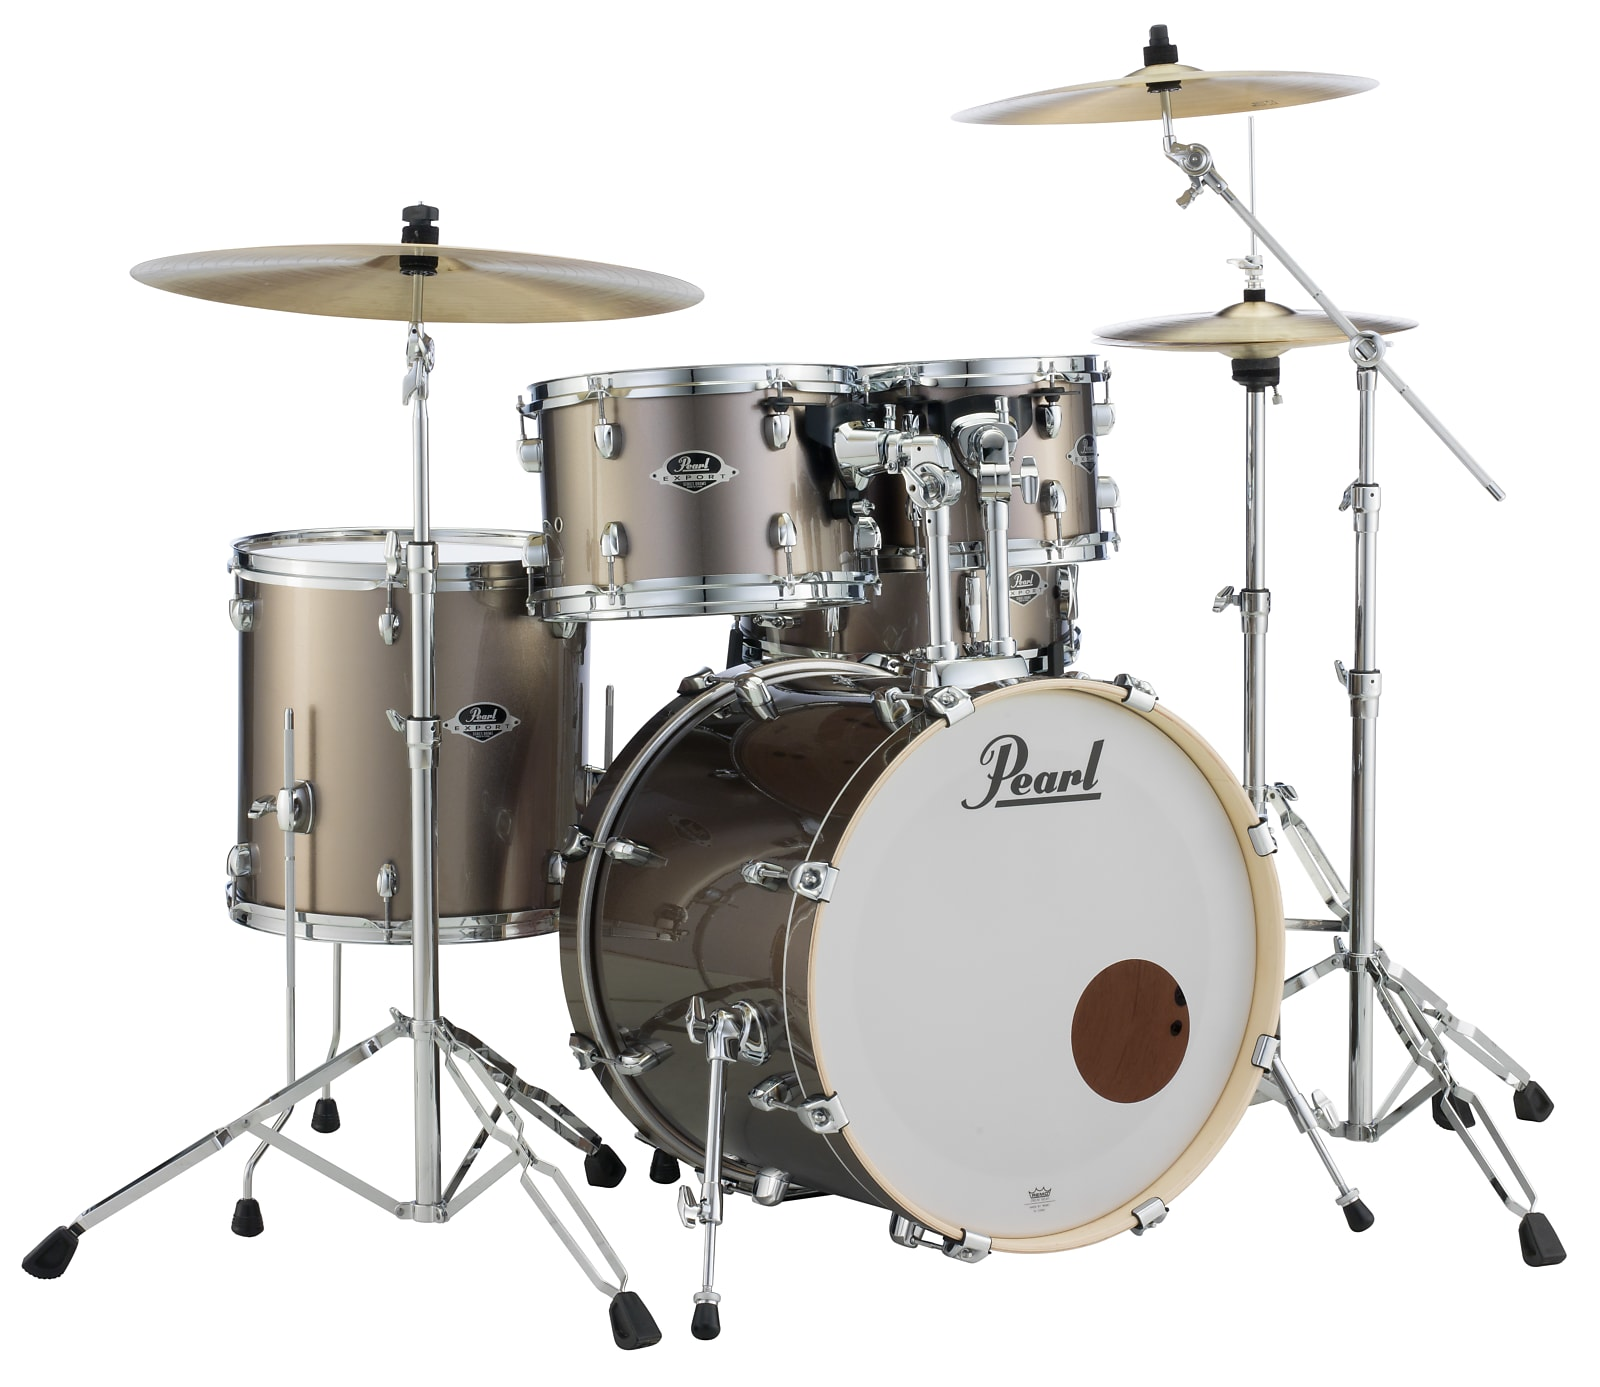 Pearl 5pc Export  Drum Kit in #706 Bronze Metallic / INCLUDES Complete 830 Hardware Pack